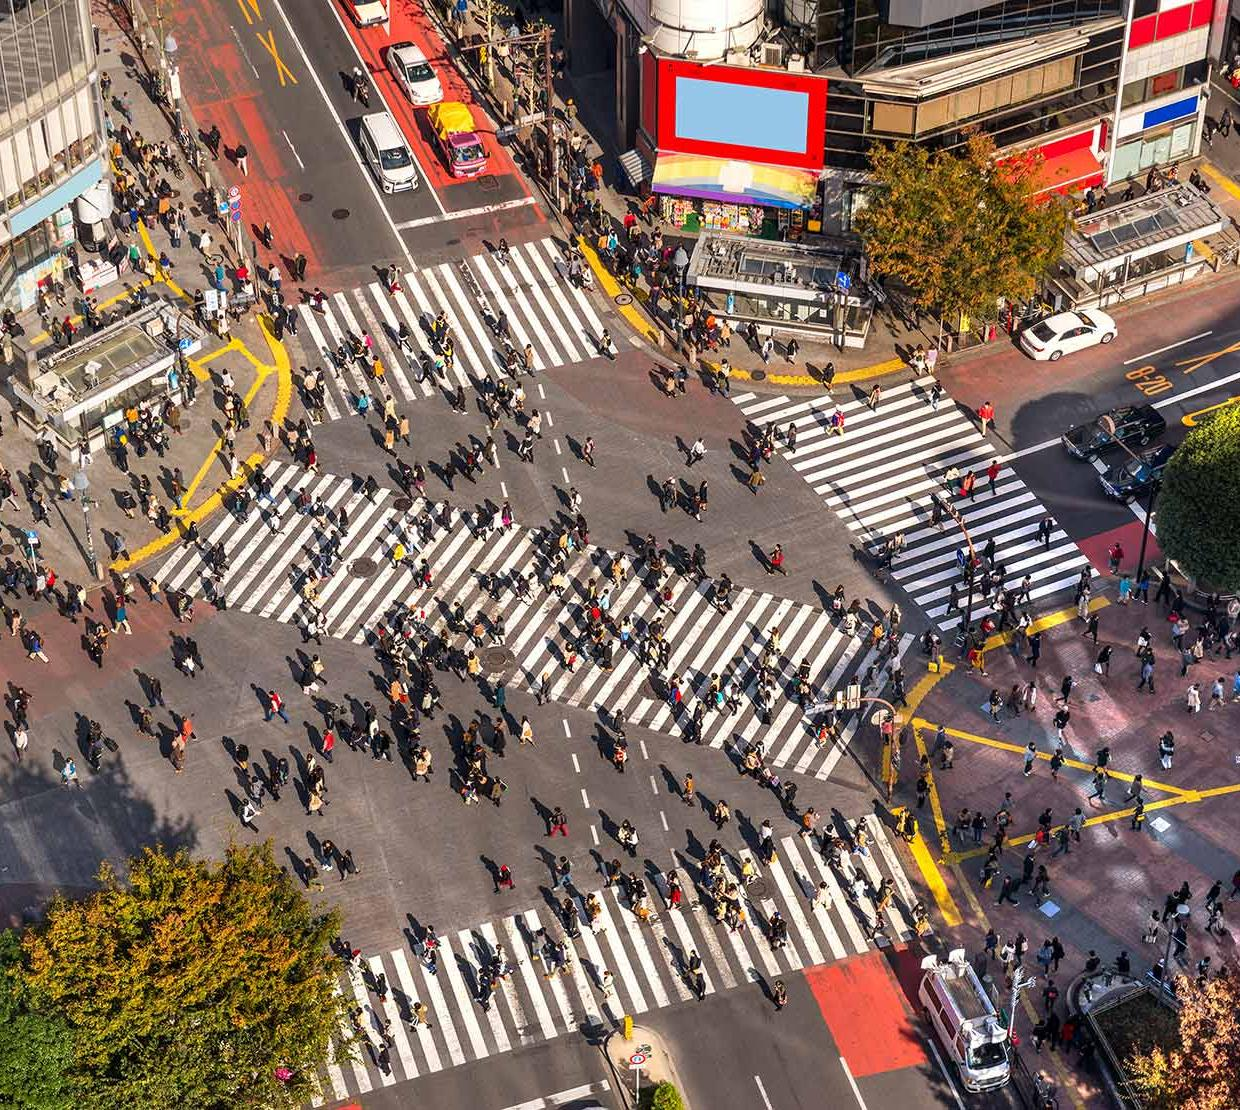 arial view of citizens walking through busy intersection in Japan